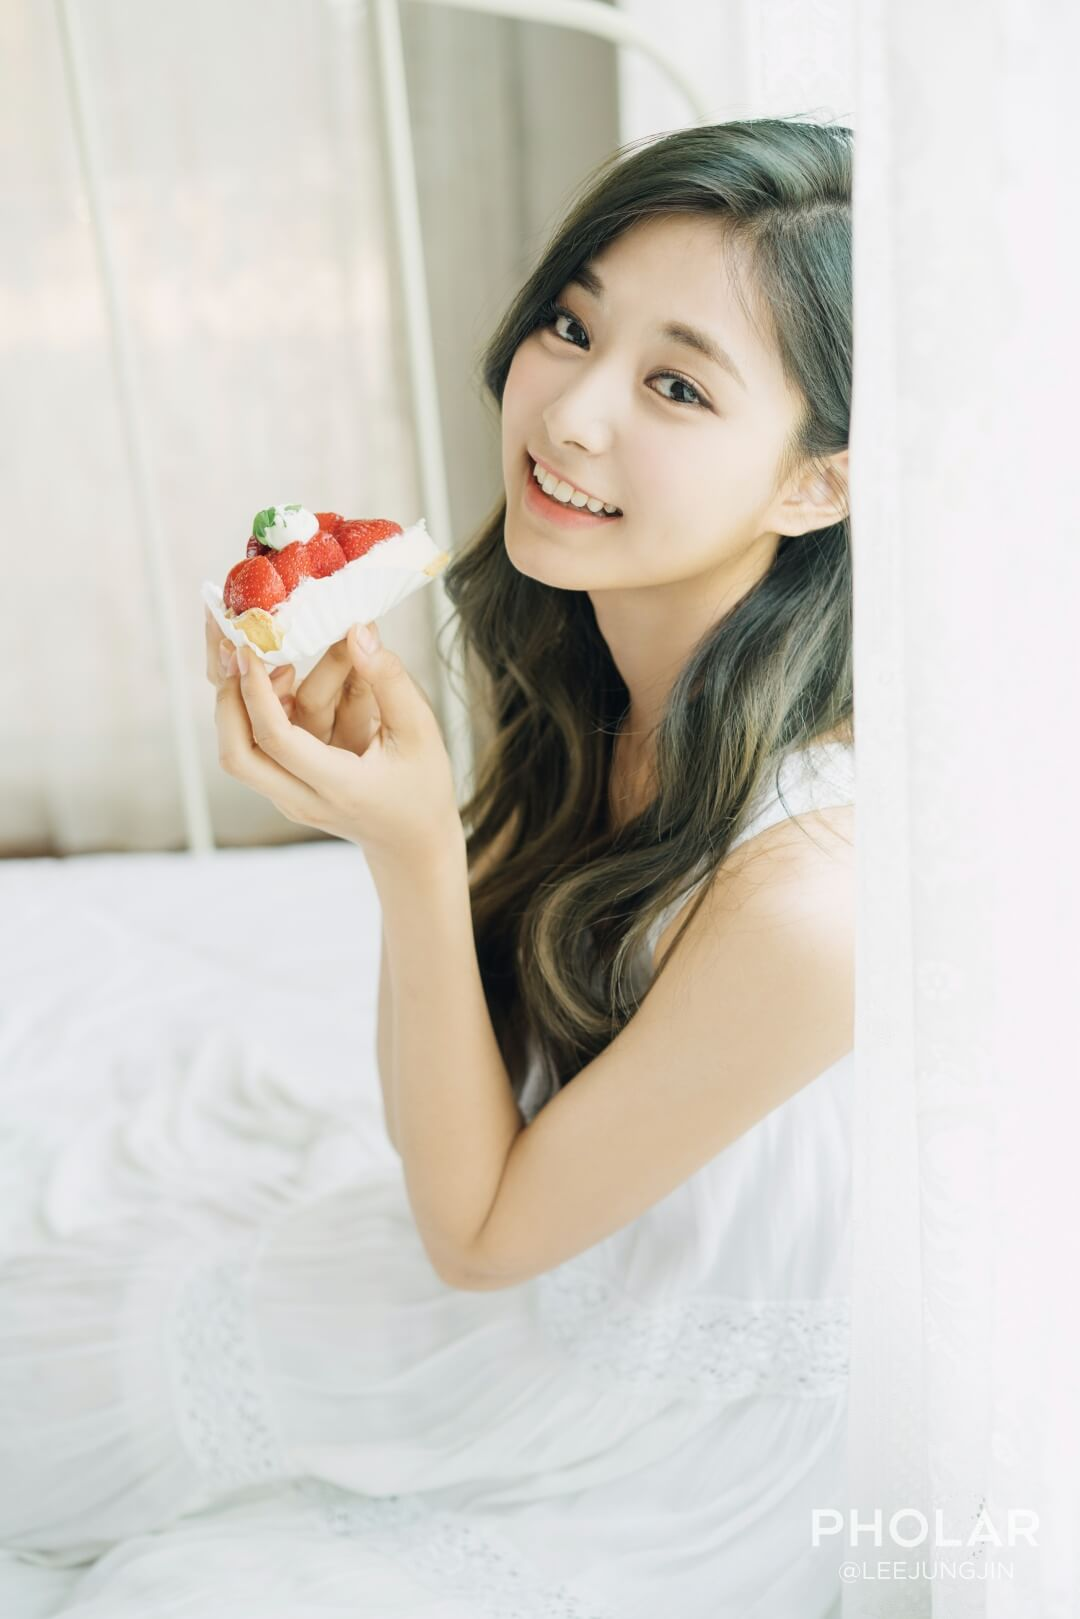 Cute Korean Girl Wallpaper 5 Days Of Tzuyu Being Classy And Beautiful Thanks To